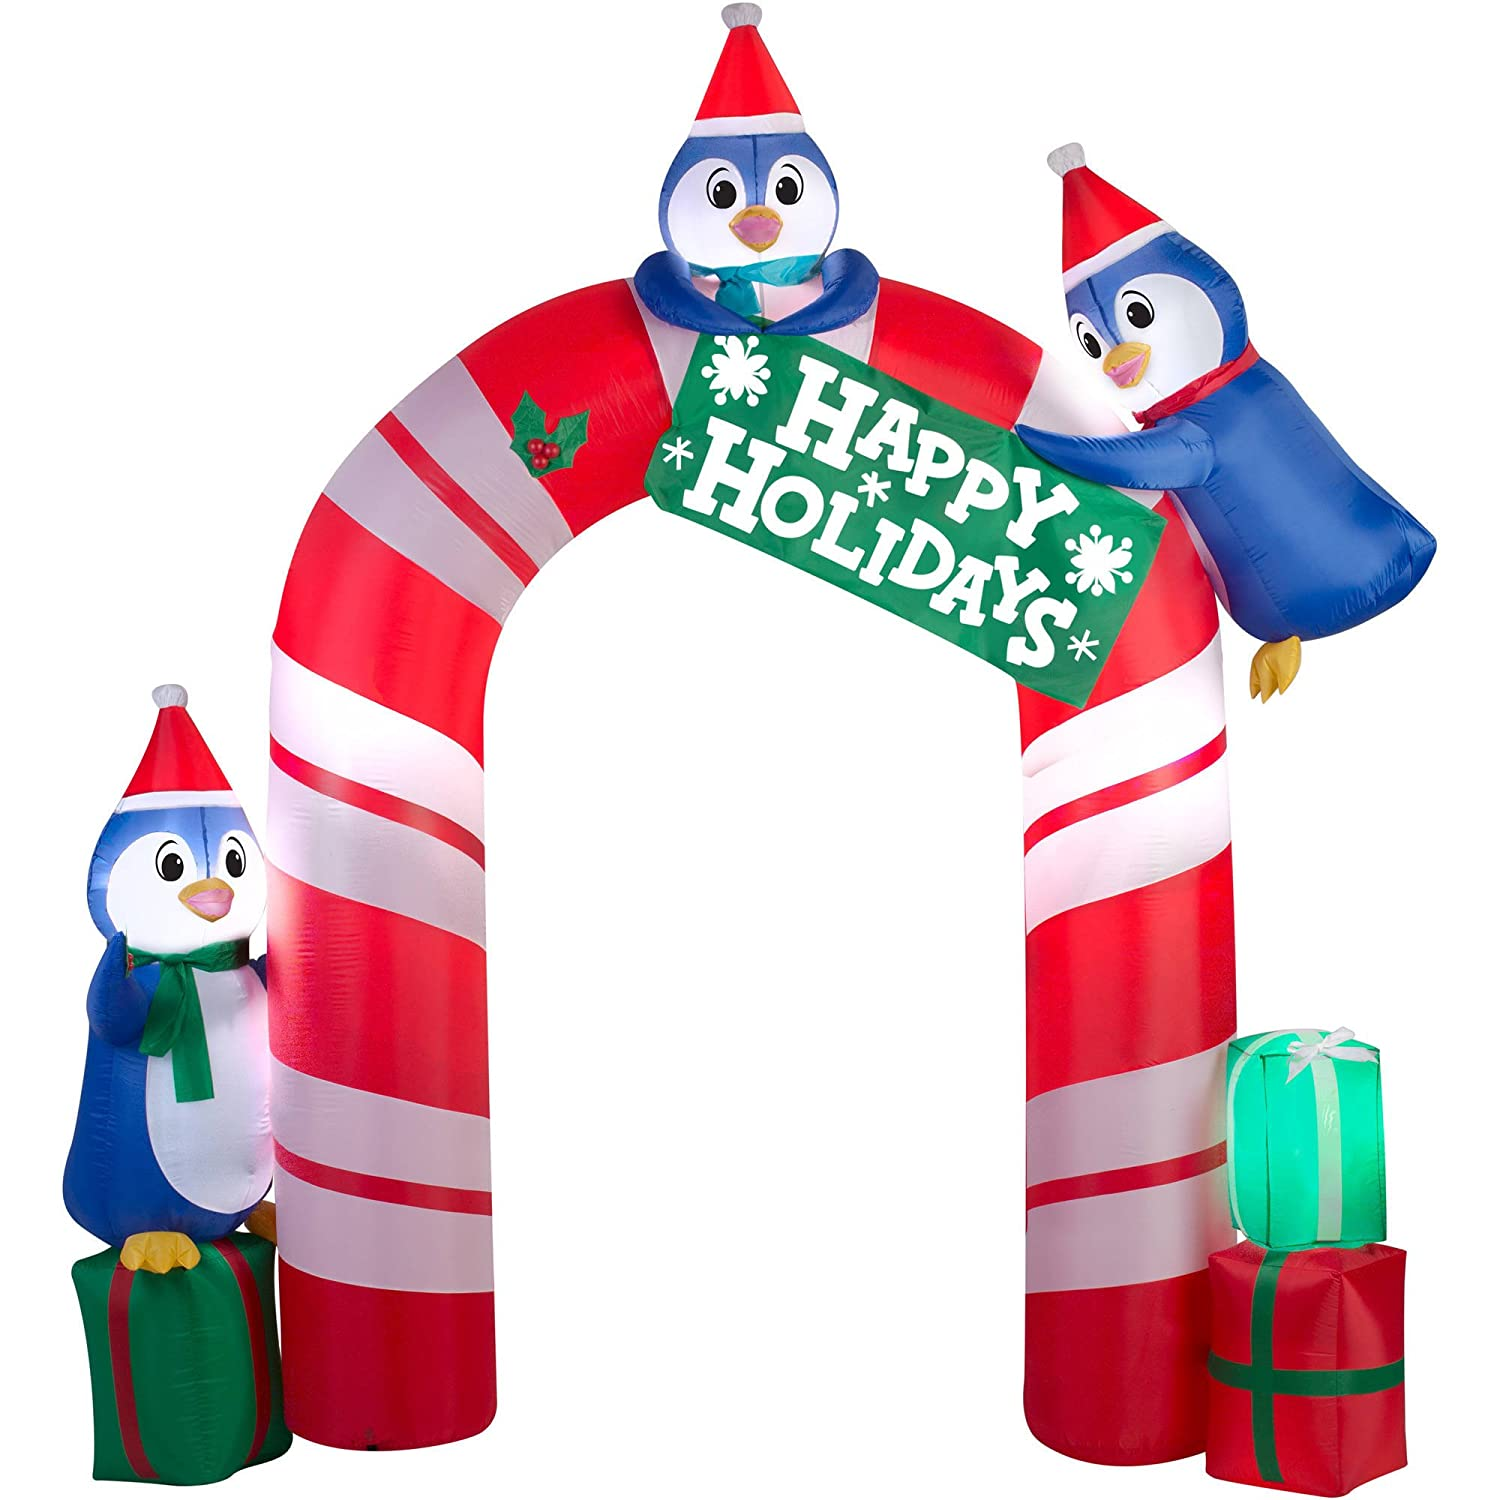 Amazon.com: Christmas Inflatable Happy Holidays Penguin Archway by ...